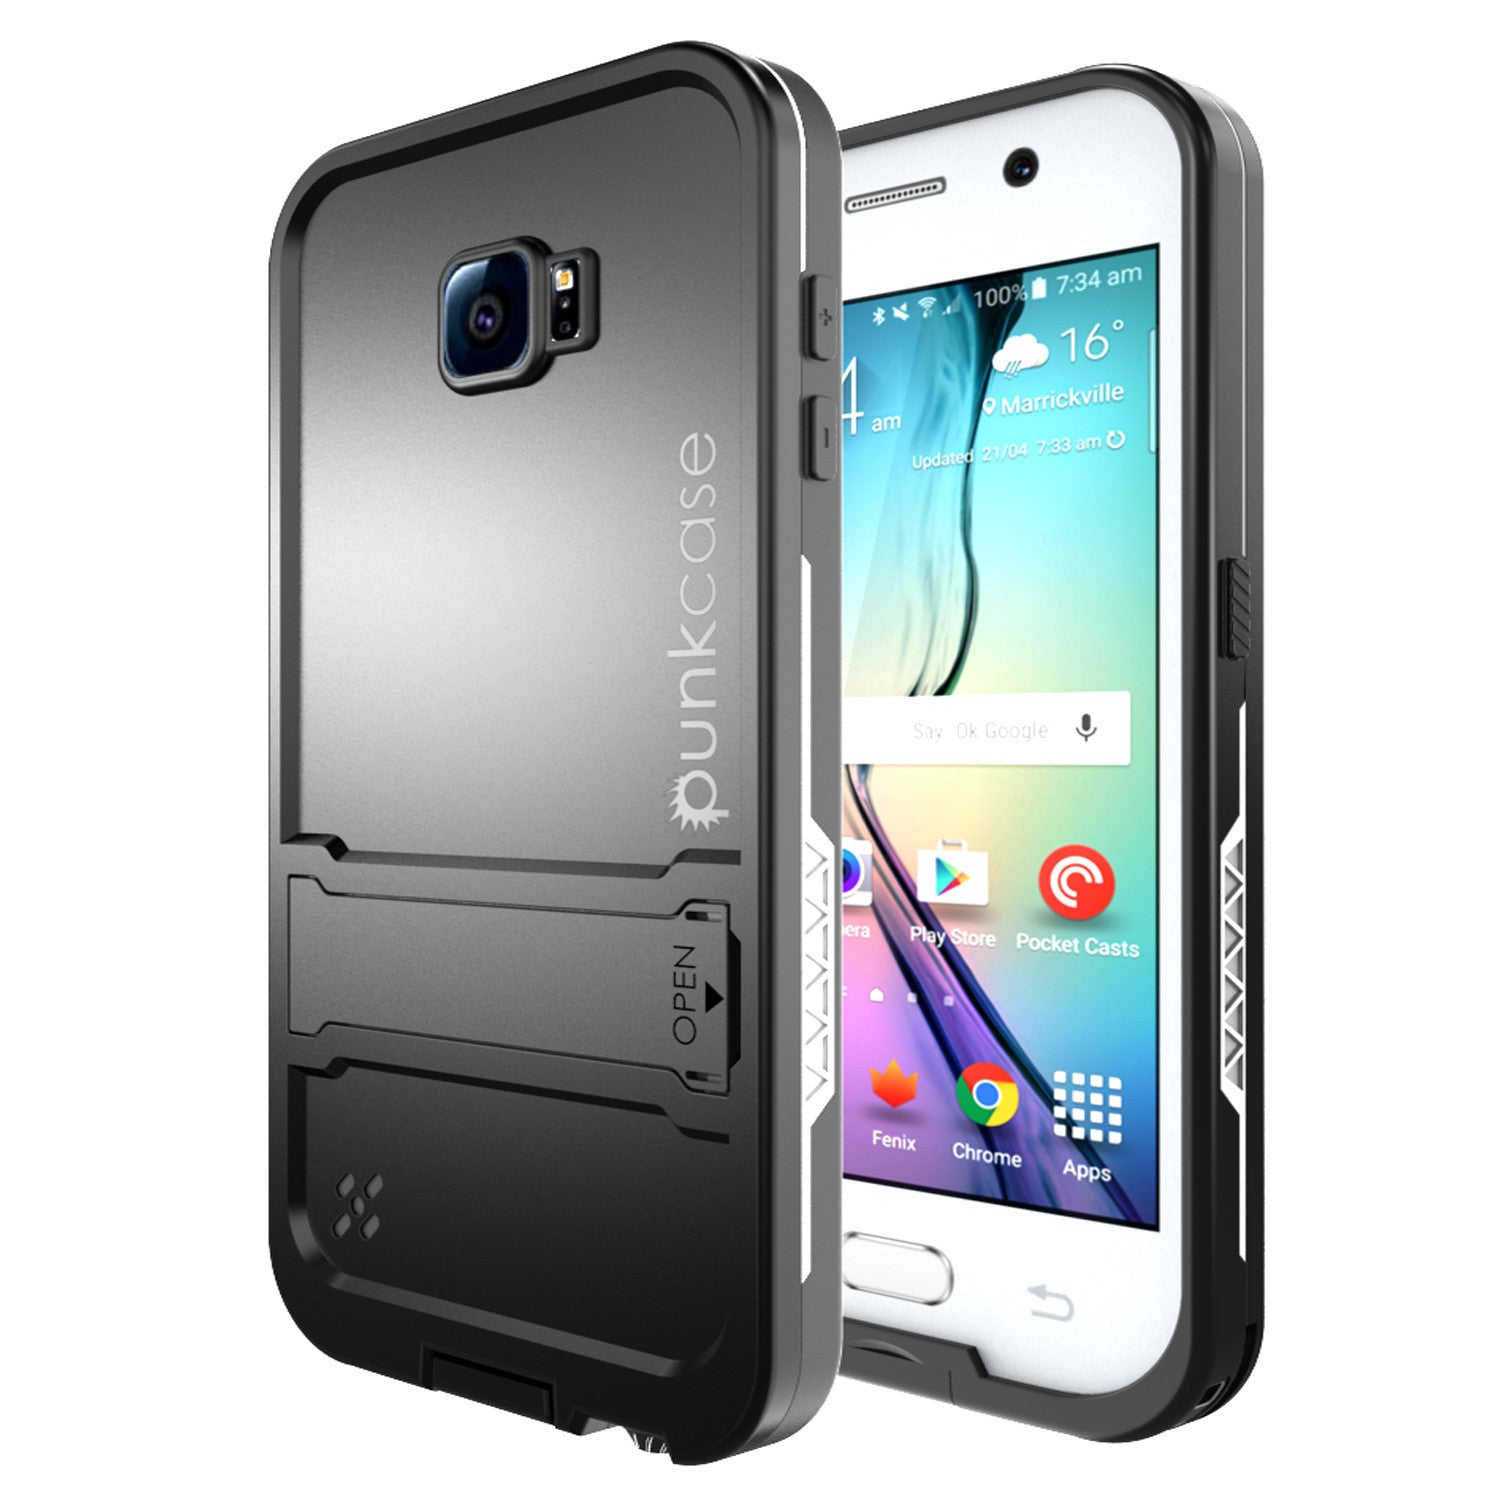 Galaxy S6 Waterproof Case, Punkcase SpikeStar White Water/Shock/Dirt/Snow Proof | Lifetime Warranty